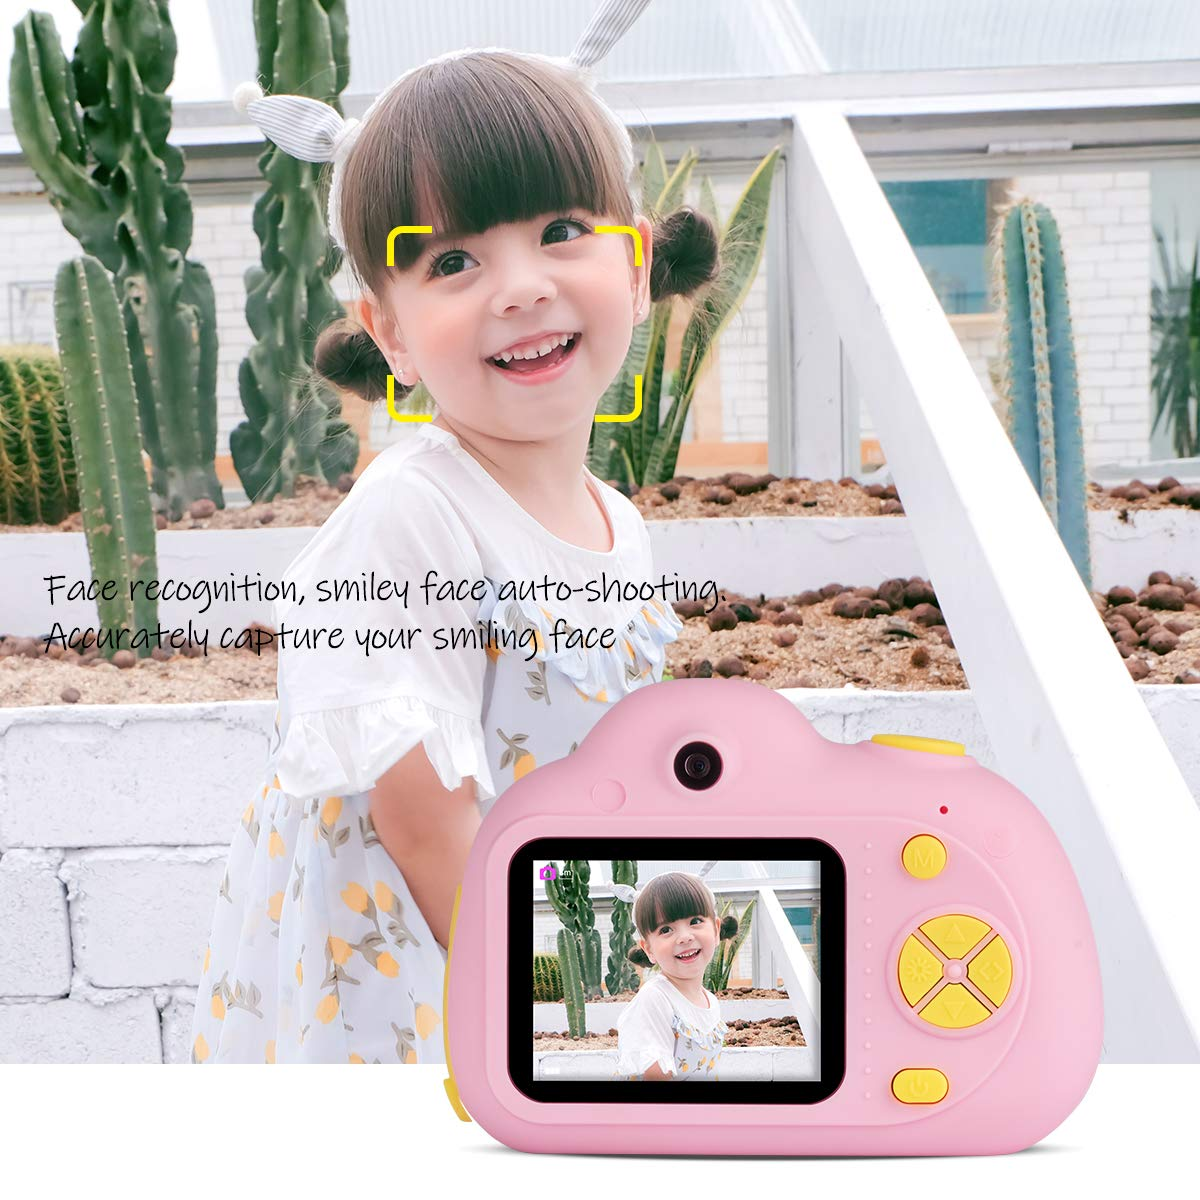 Kids Cameras Dual Selfie Digital Camera HD Video Recorder Action Camera Camcorder for 4-9 Year Old Kids Birthday Festival Gifts Toys for Children Boys Girls 2.0'' LCD Screen 4X Digital Zoom (Pink) by Tyhbelle (Image #3)